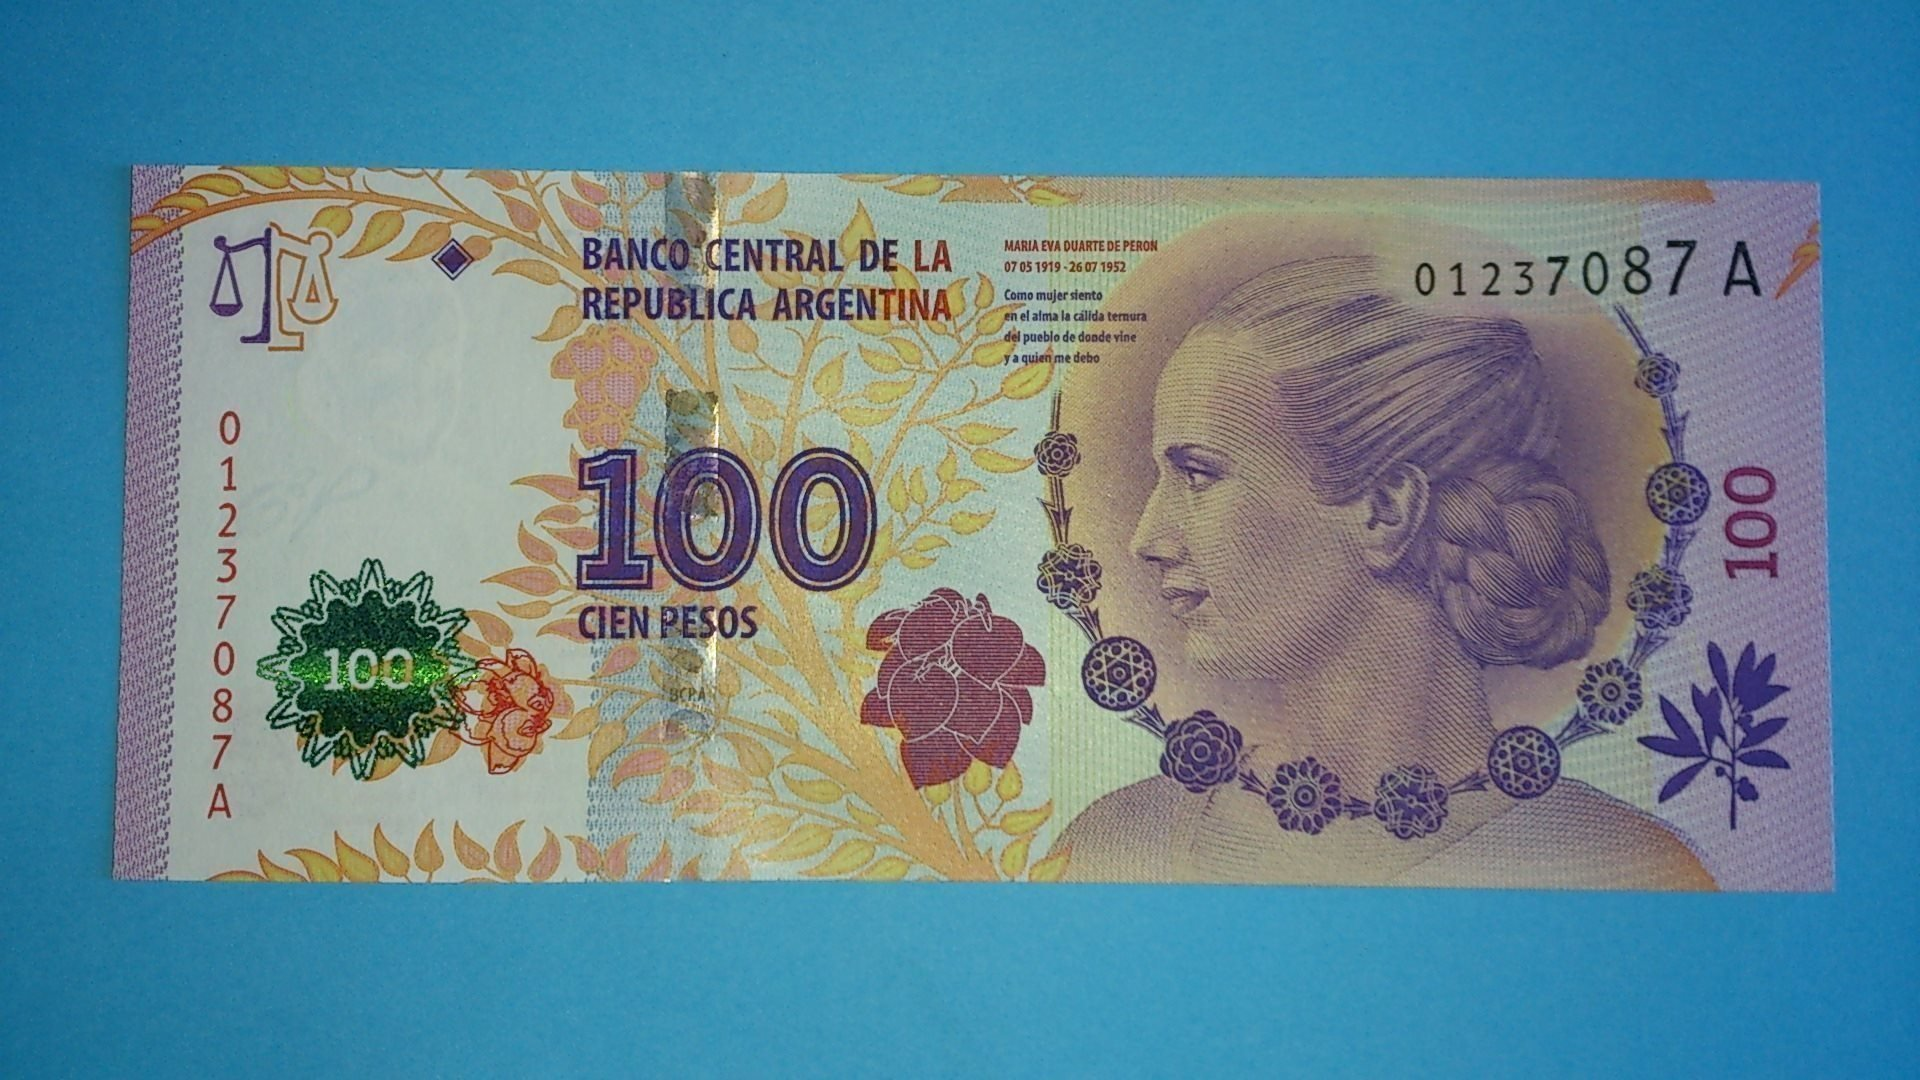 Argentina ¤ P358a ¤ 100 Pesos ¤ 2012 ¤ Suffix A (first issue diff. from B-XX)